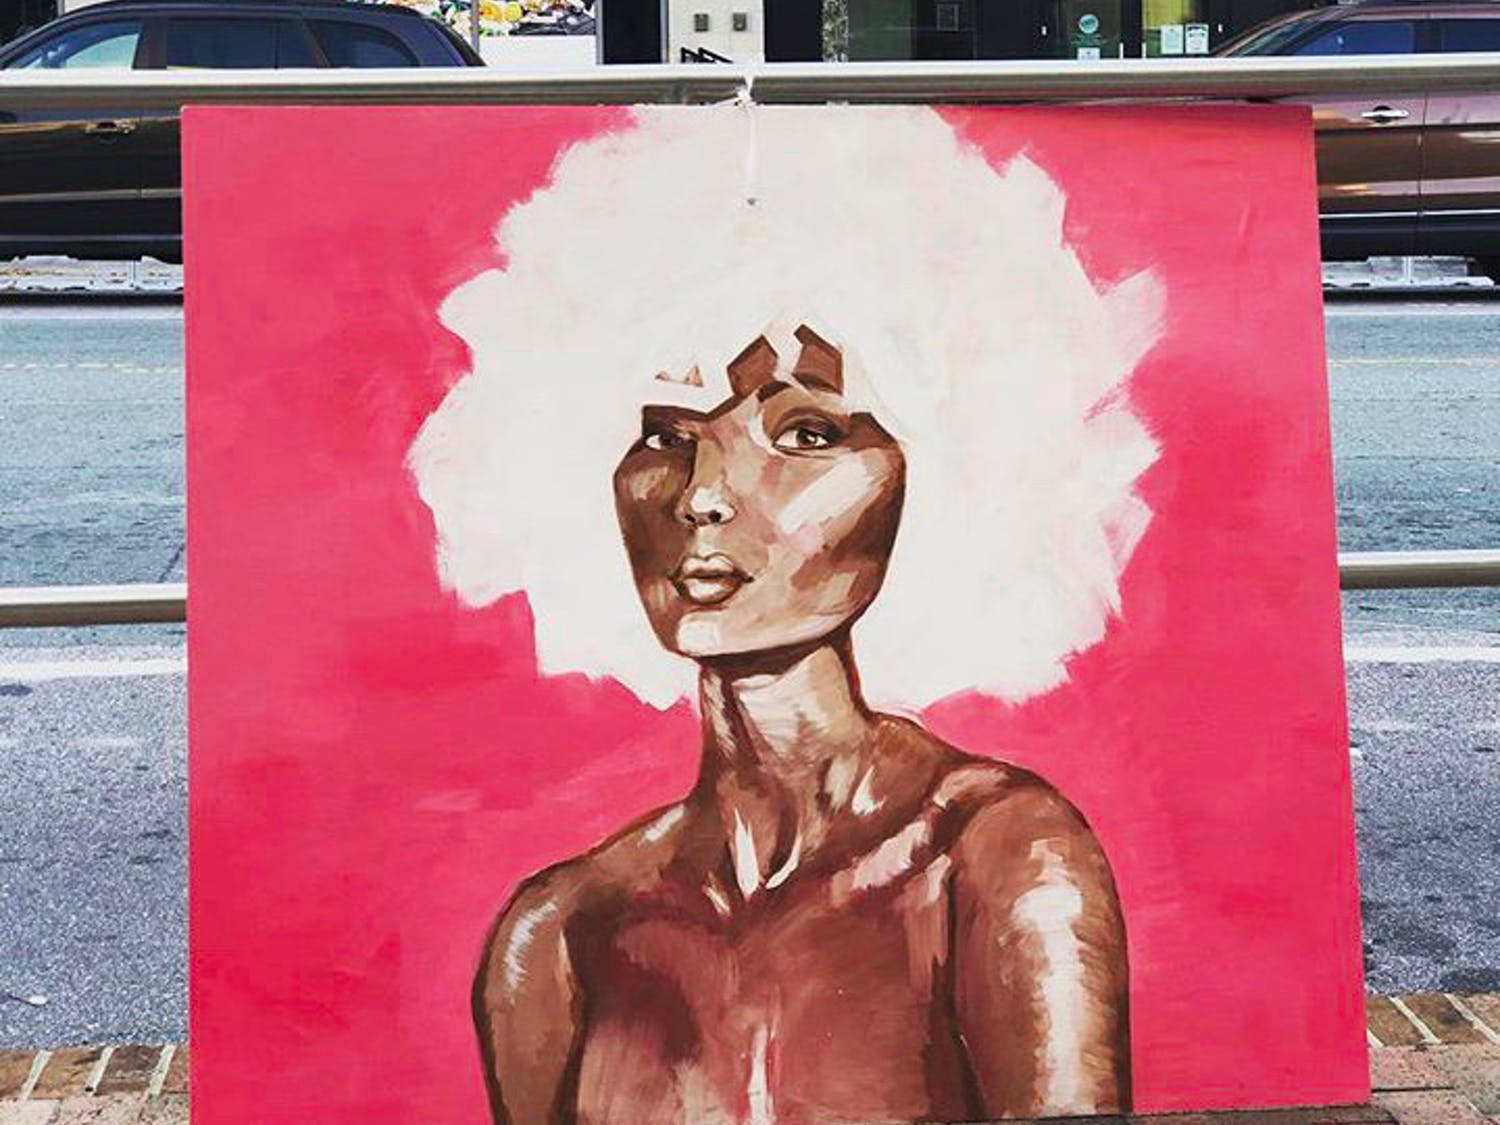 """Lady in Pink"" by Sophie Vaughn was one of the paintings in the Meet the Moment Art Walk on Franklin Street that went missing. Photo courtesy of Sophie Vaughn."